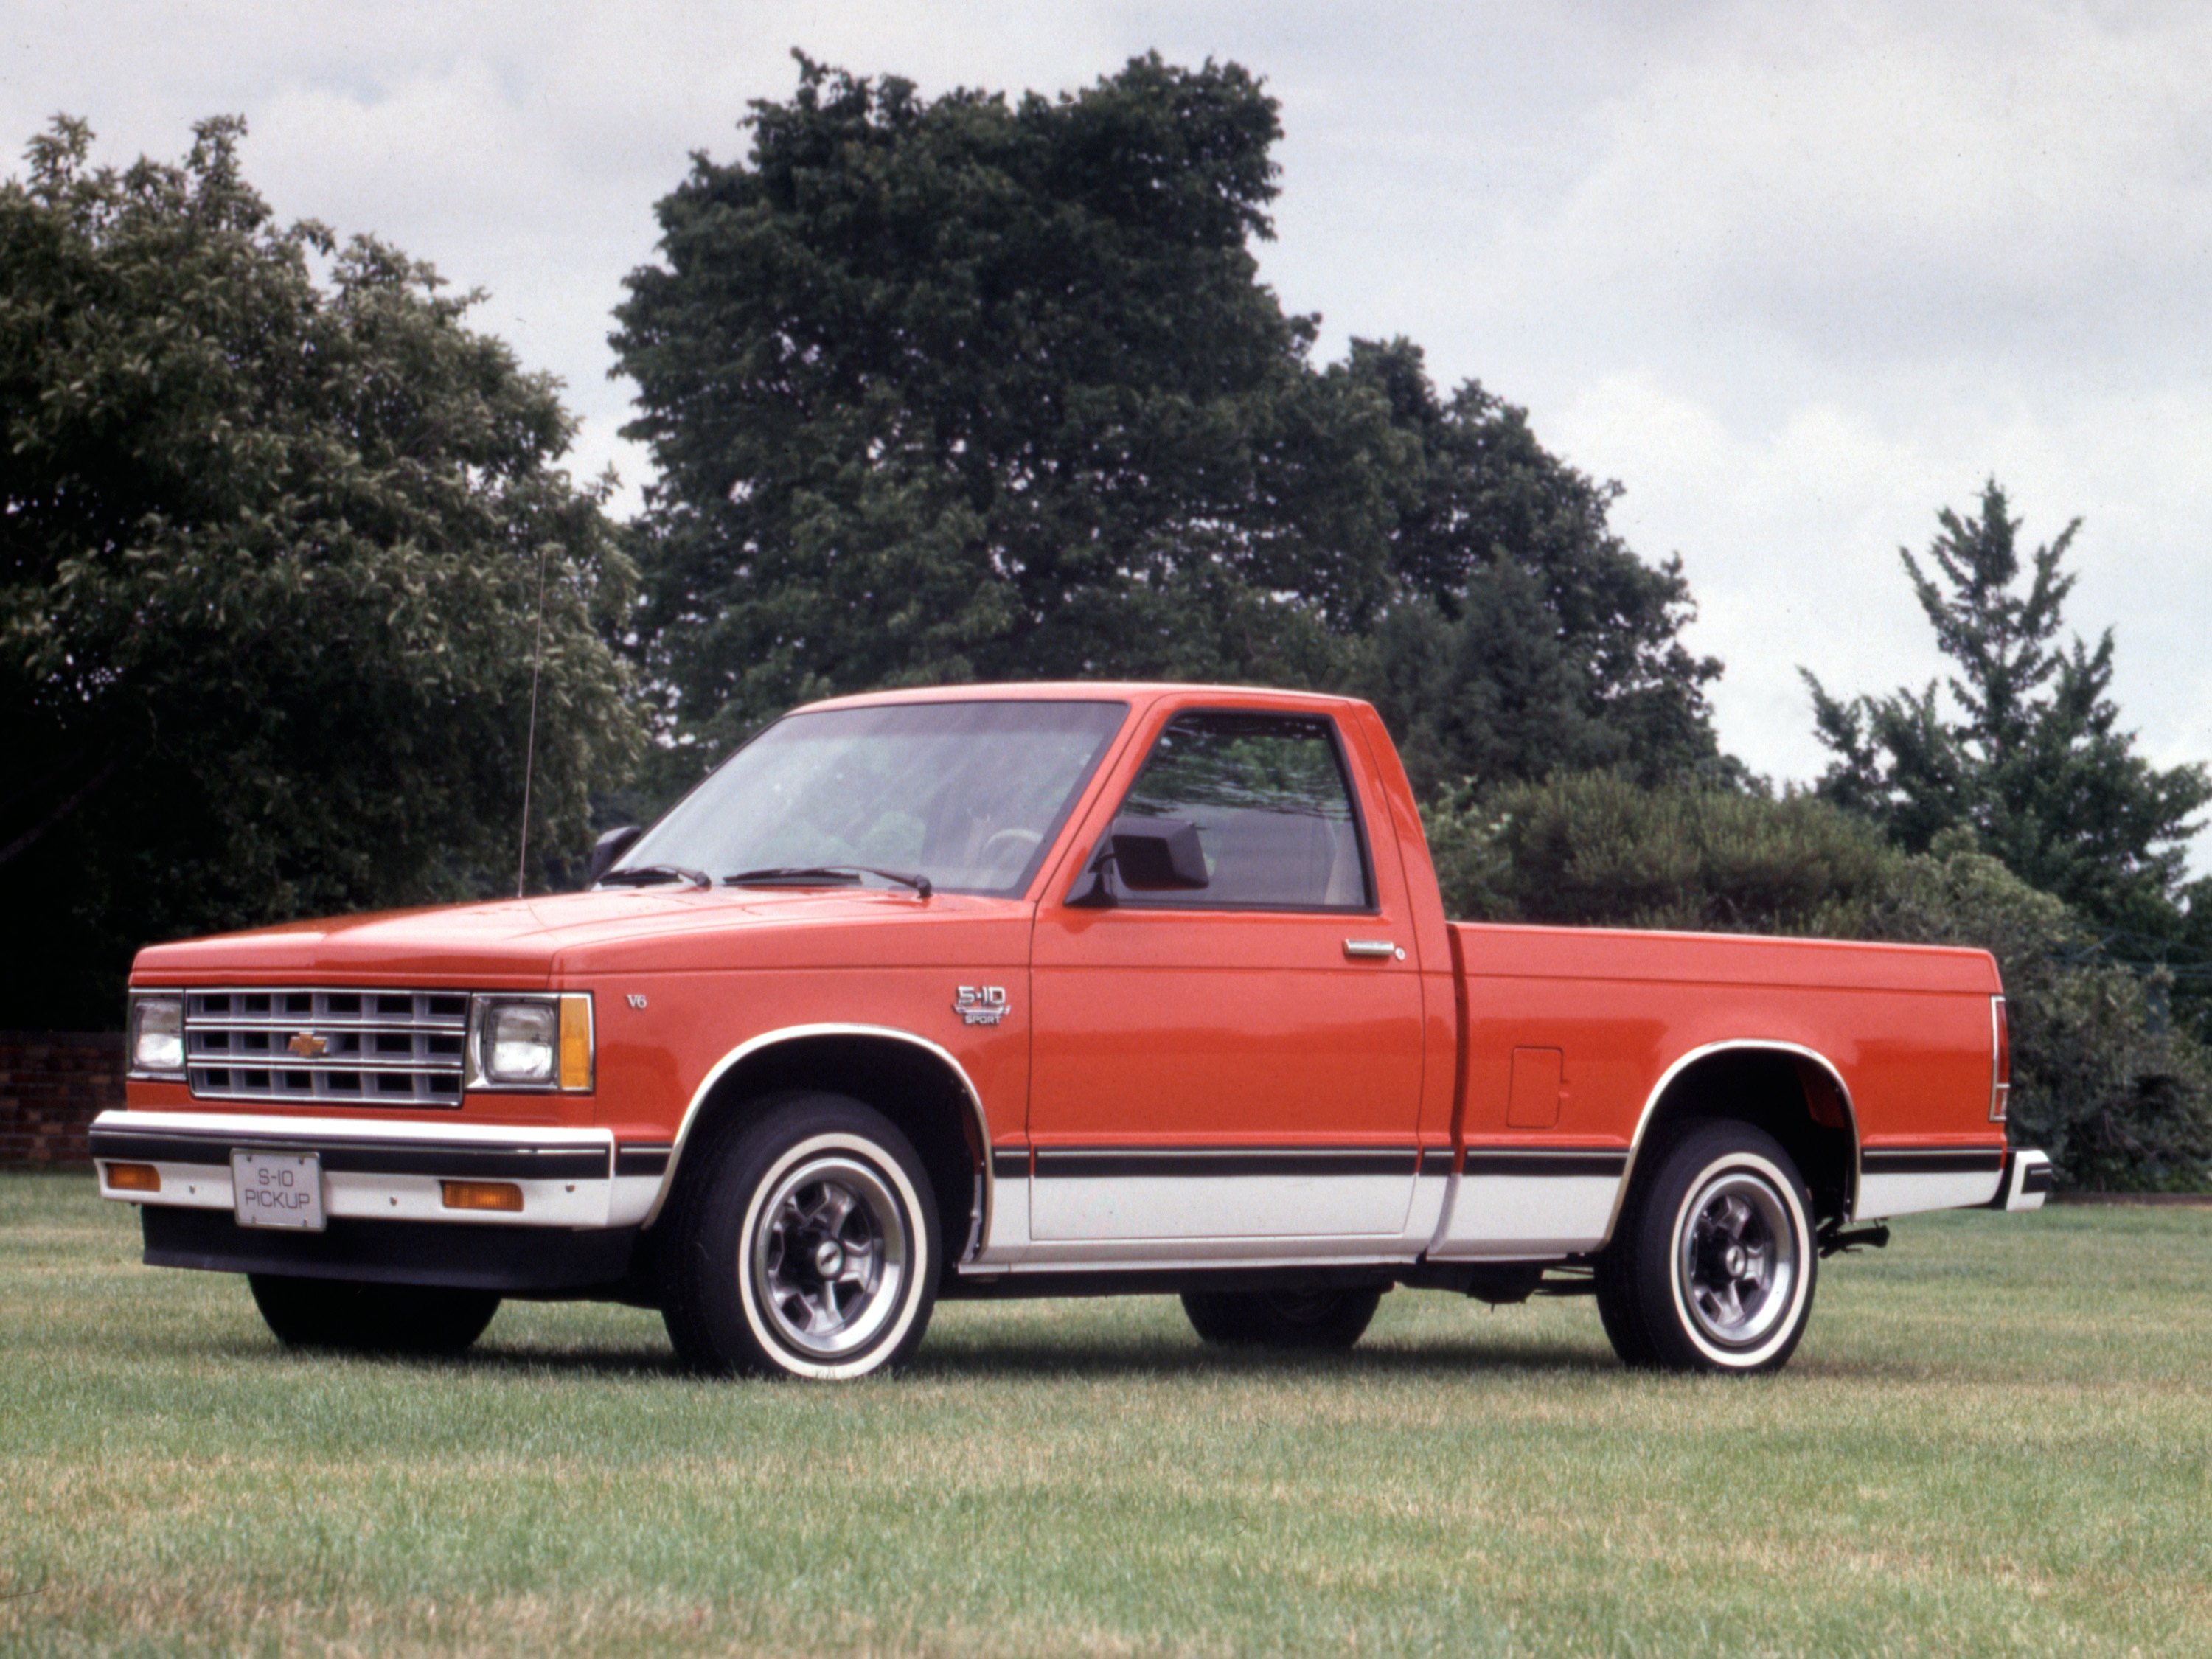 9.%20Chevrolet%20S10%20(1982) Cool Review About Chevy S10 tow Capacity with Breathtaking Gallery Cars Review